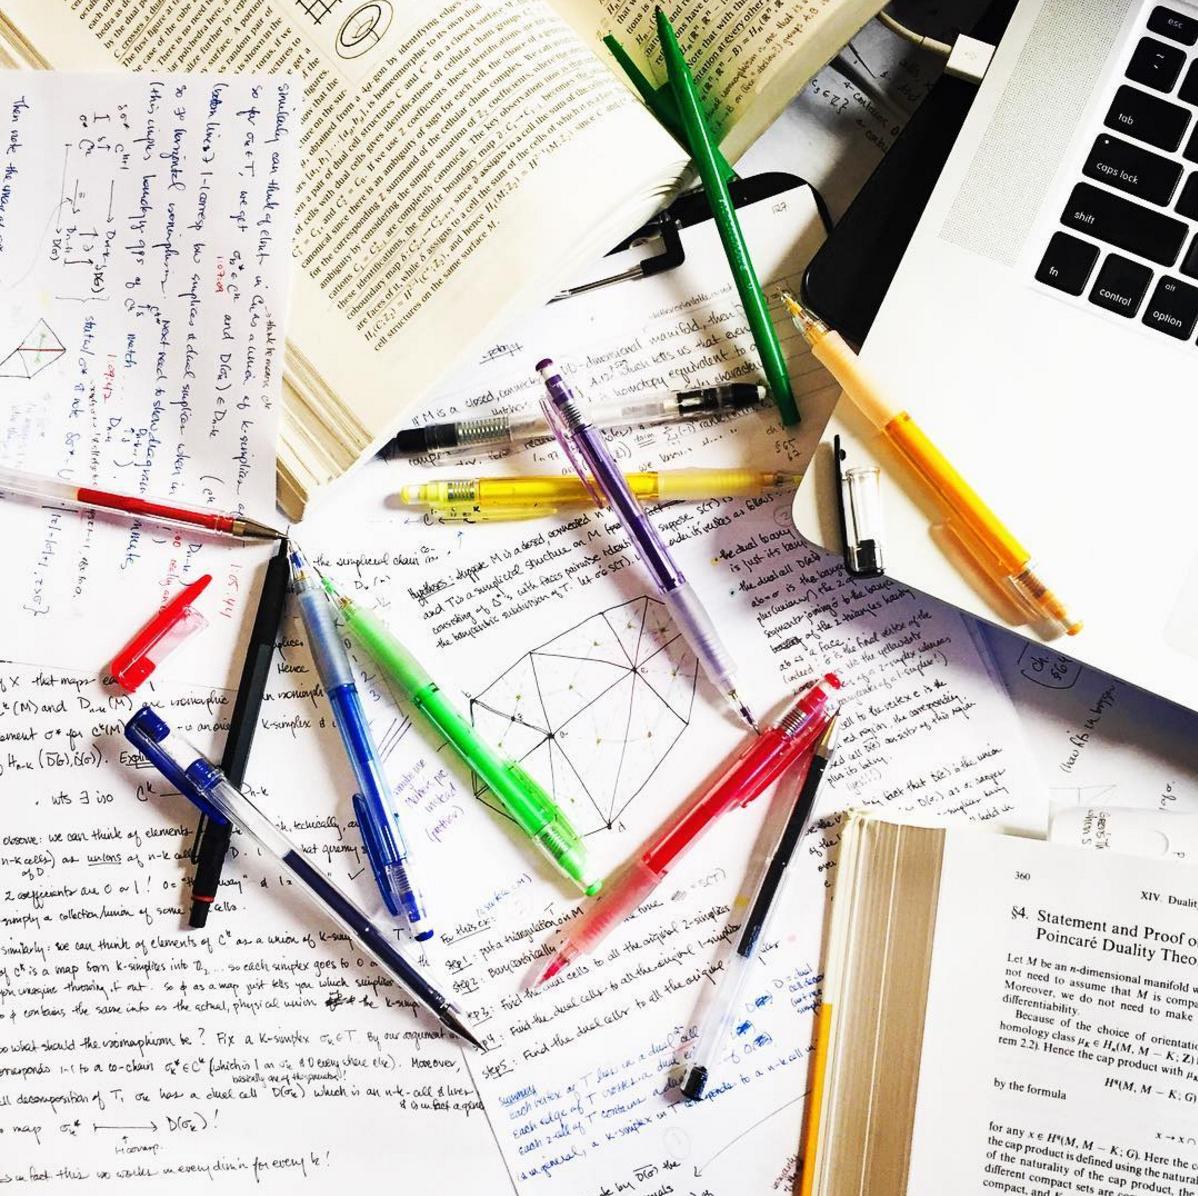 Pen, papers, and math